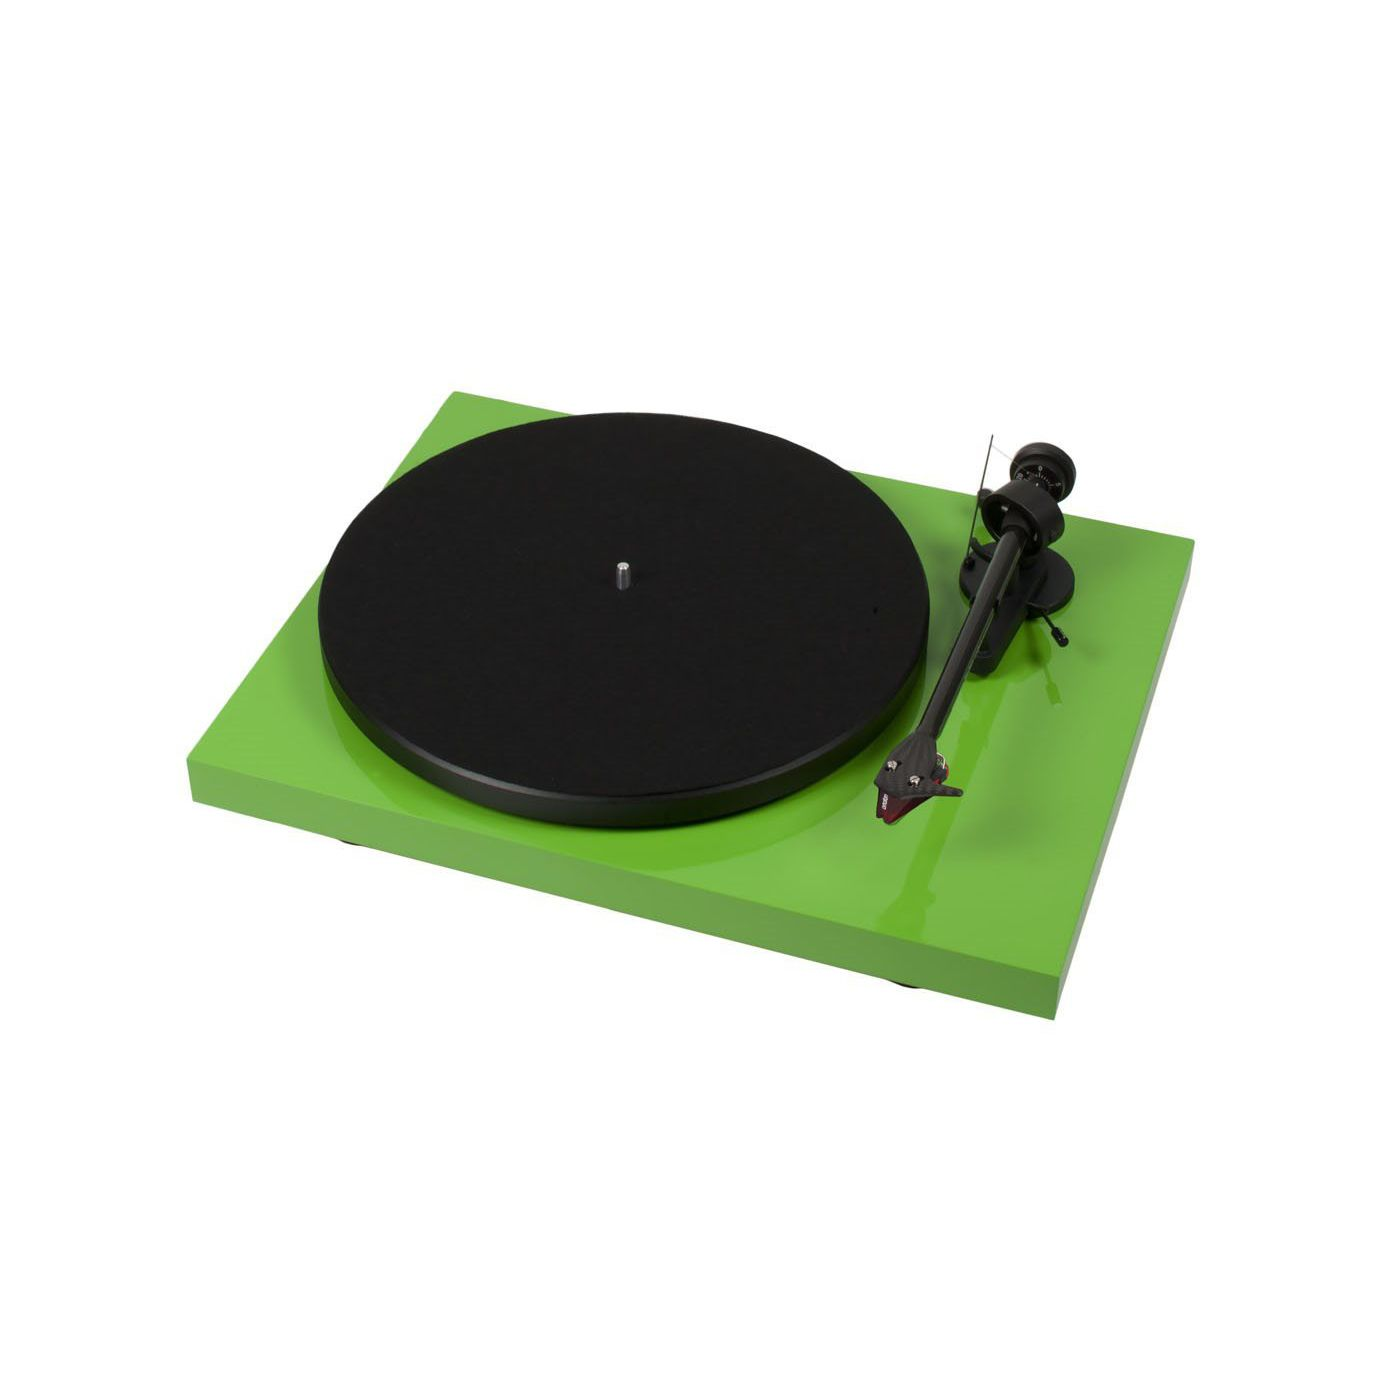 manual turntable / belt-driven / 33.3 rpm / with USB port - DEBUT CARBON